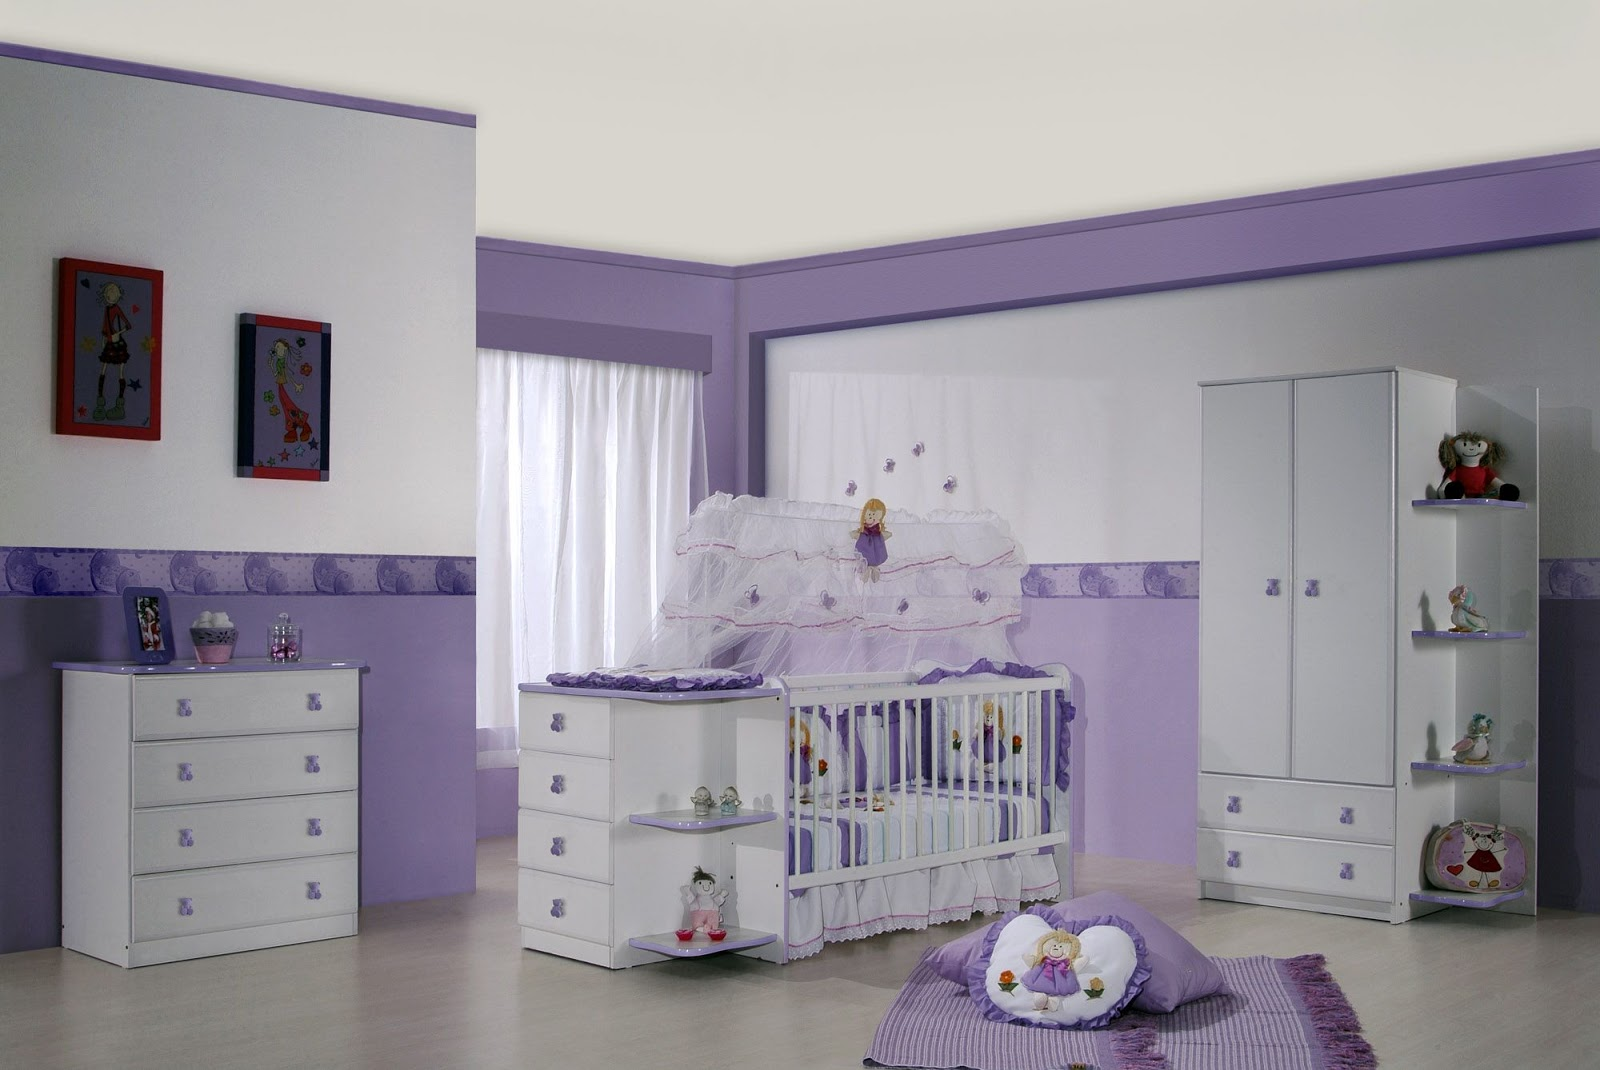 design interiores decoracao quarto bebe : design interiores decoracao quarto bebe:Decoracao Quarto De Bebe